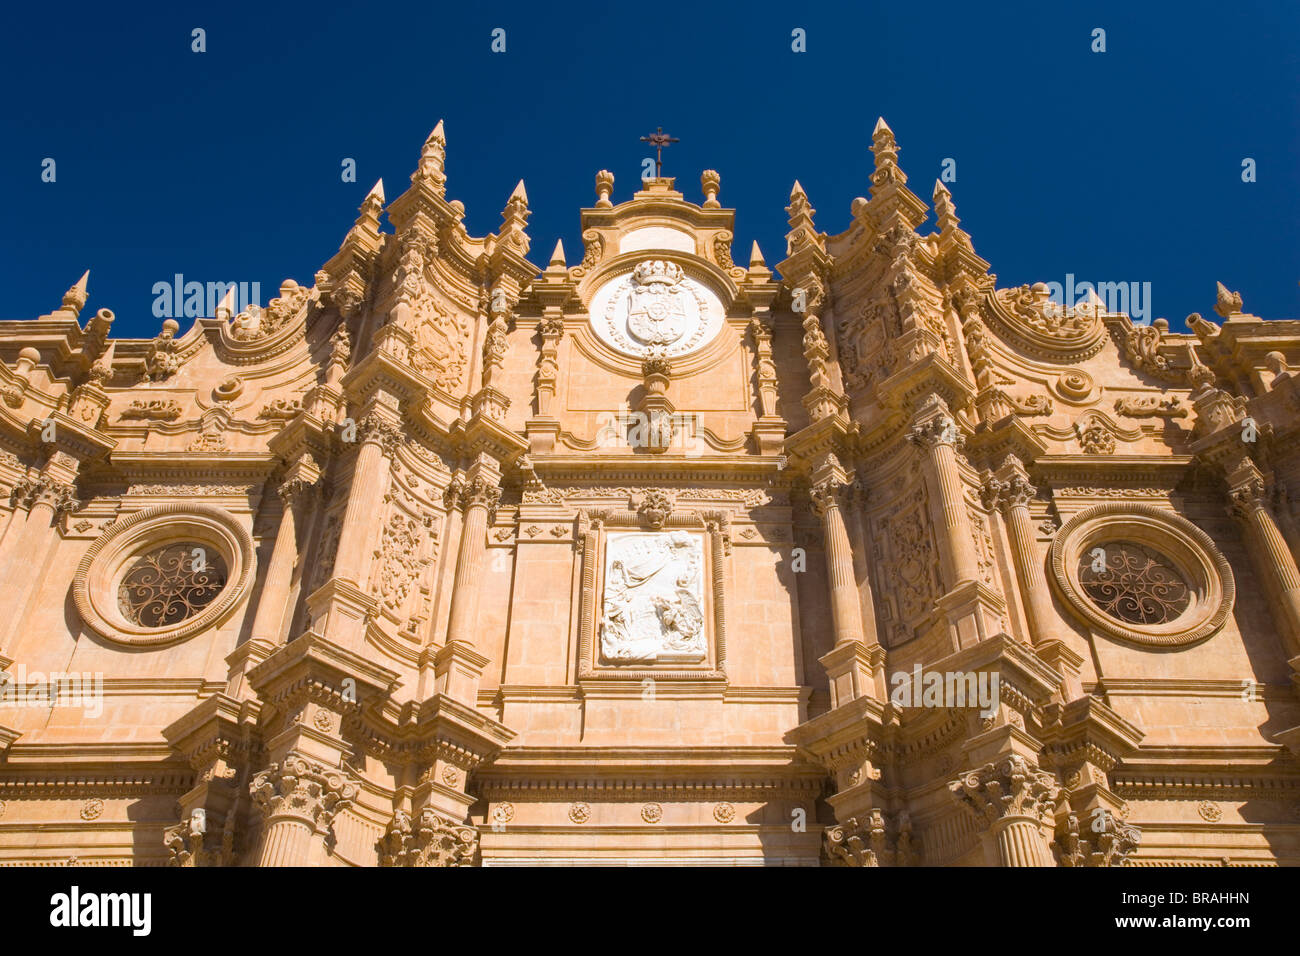 View from below of richly decorated facade of the cathedral, Guadix, Granada, Andalucia (Andalusia), Spain, Europe - Stock Image